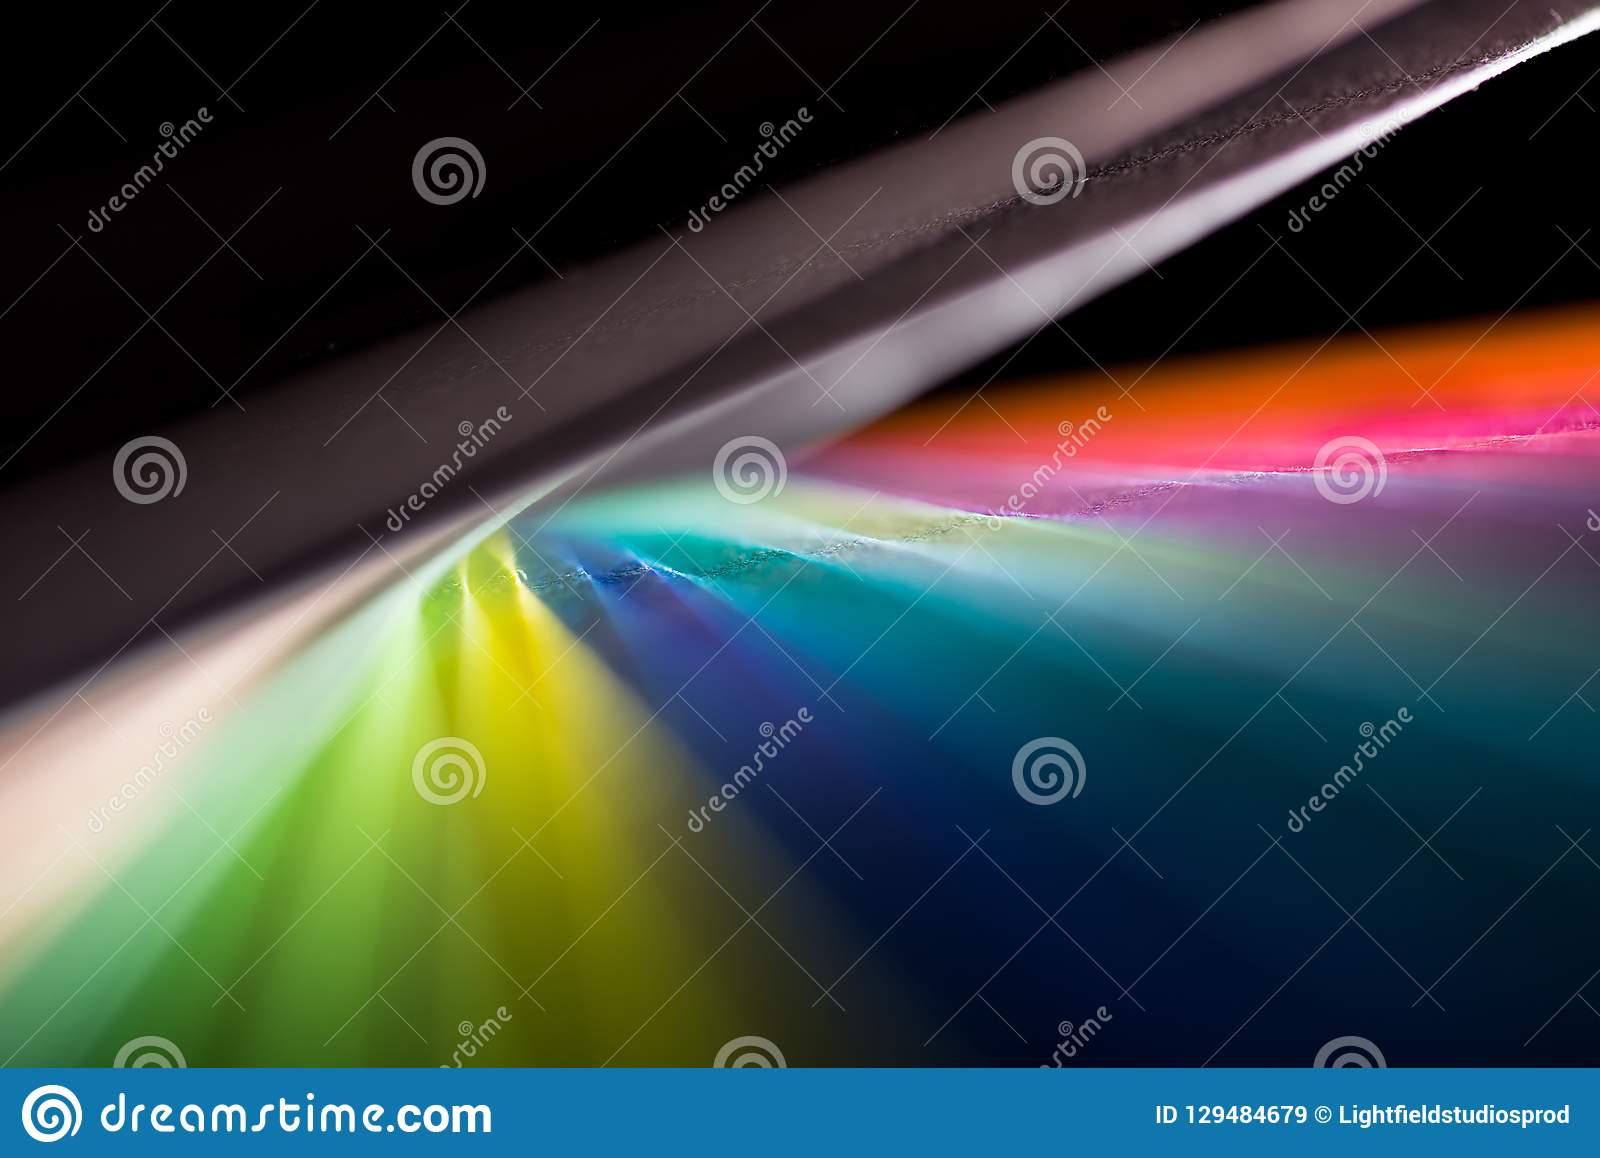 Dynamic Composition Of Colorful Papers Stock Image - Image of visual